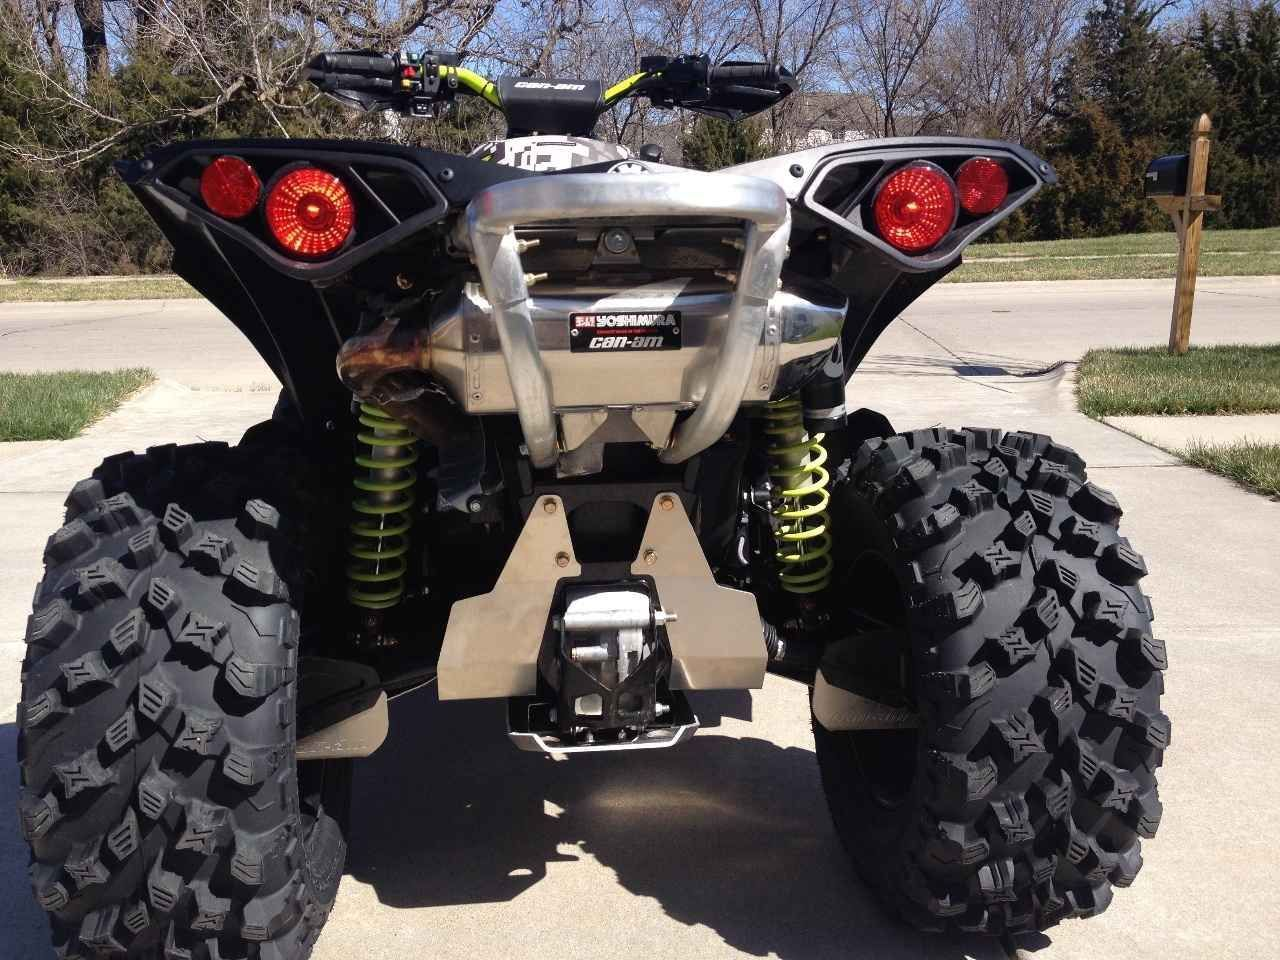 Used 2016 Can Am Renegade X Xc 1000 Atvs For Sale In Nebraska 2016 Can Am Renegade 1000r X Xc With 13 Hours Like New Has Yoshimura Can A Can Am Atv Renegade